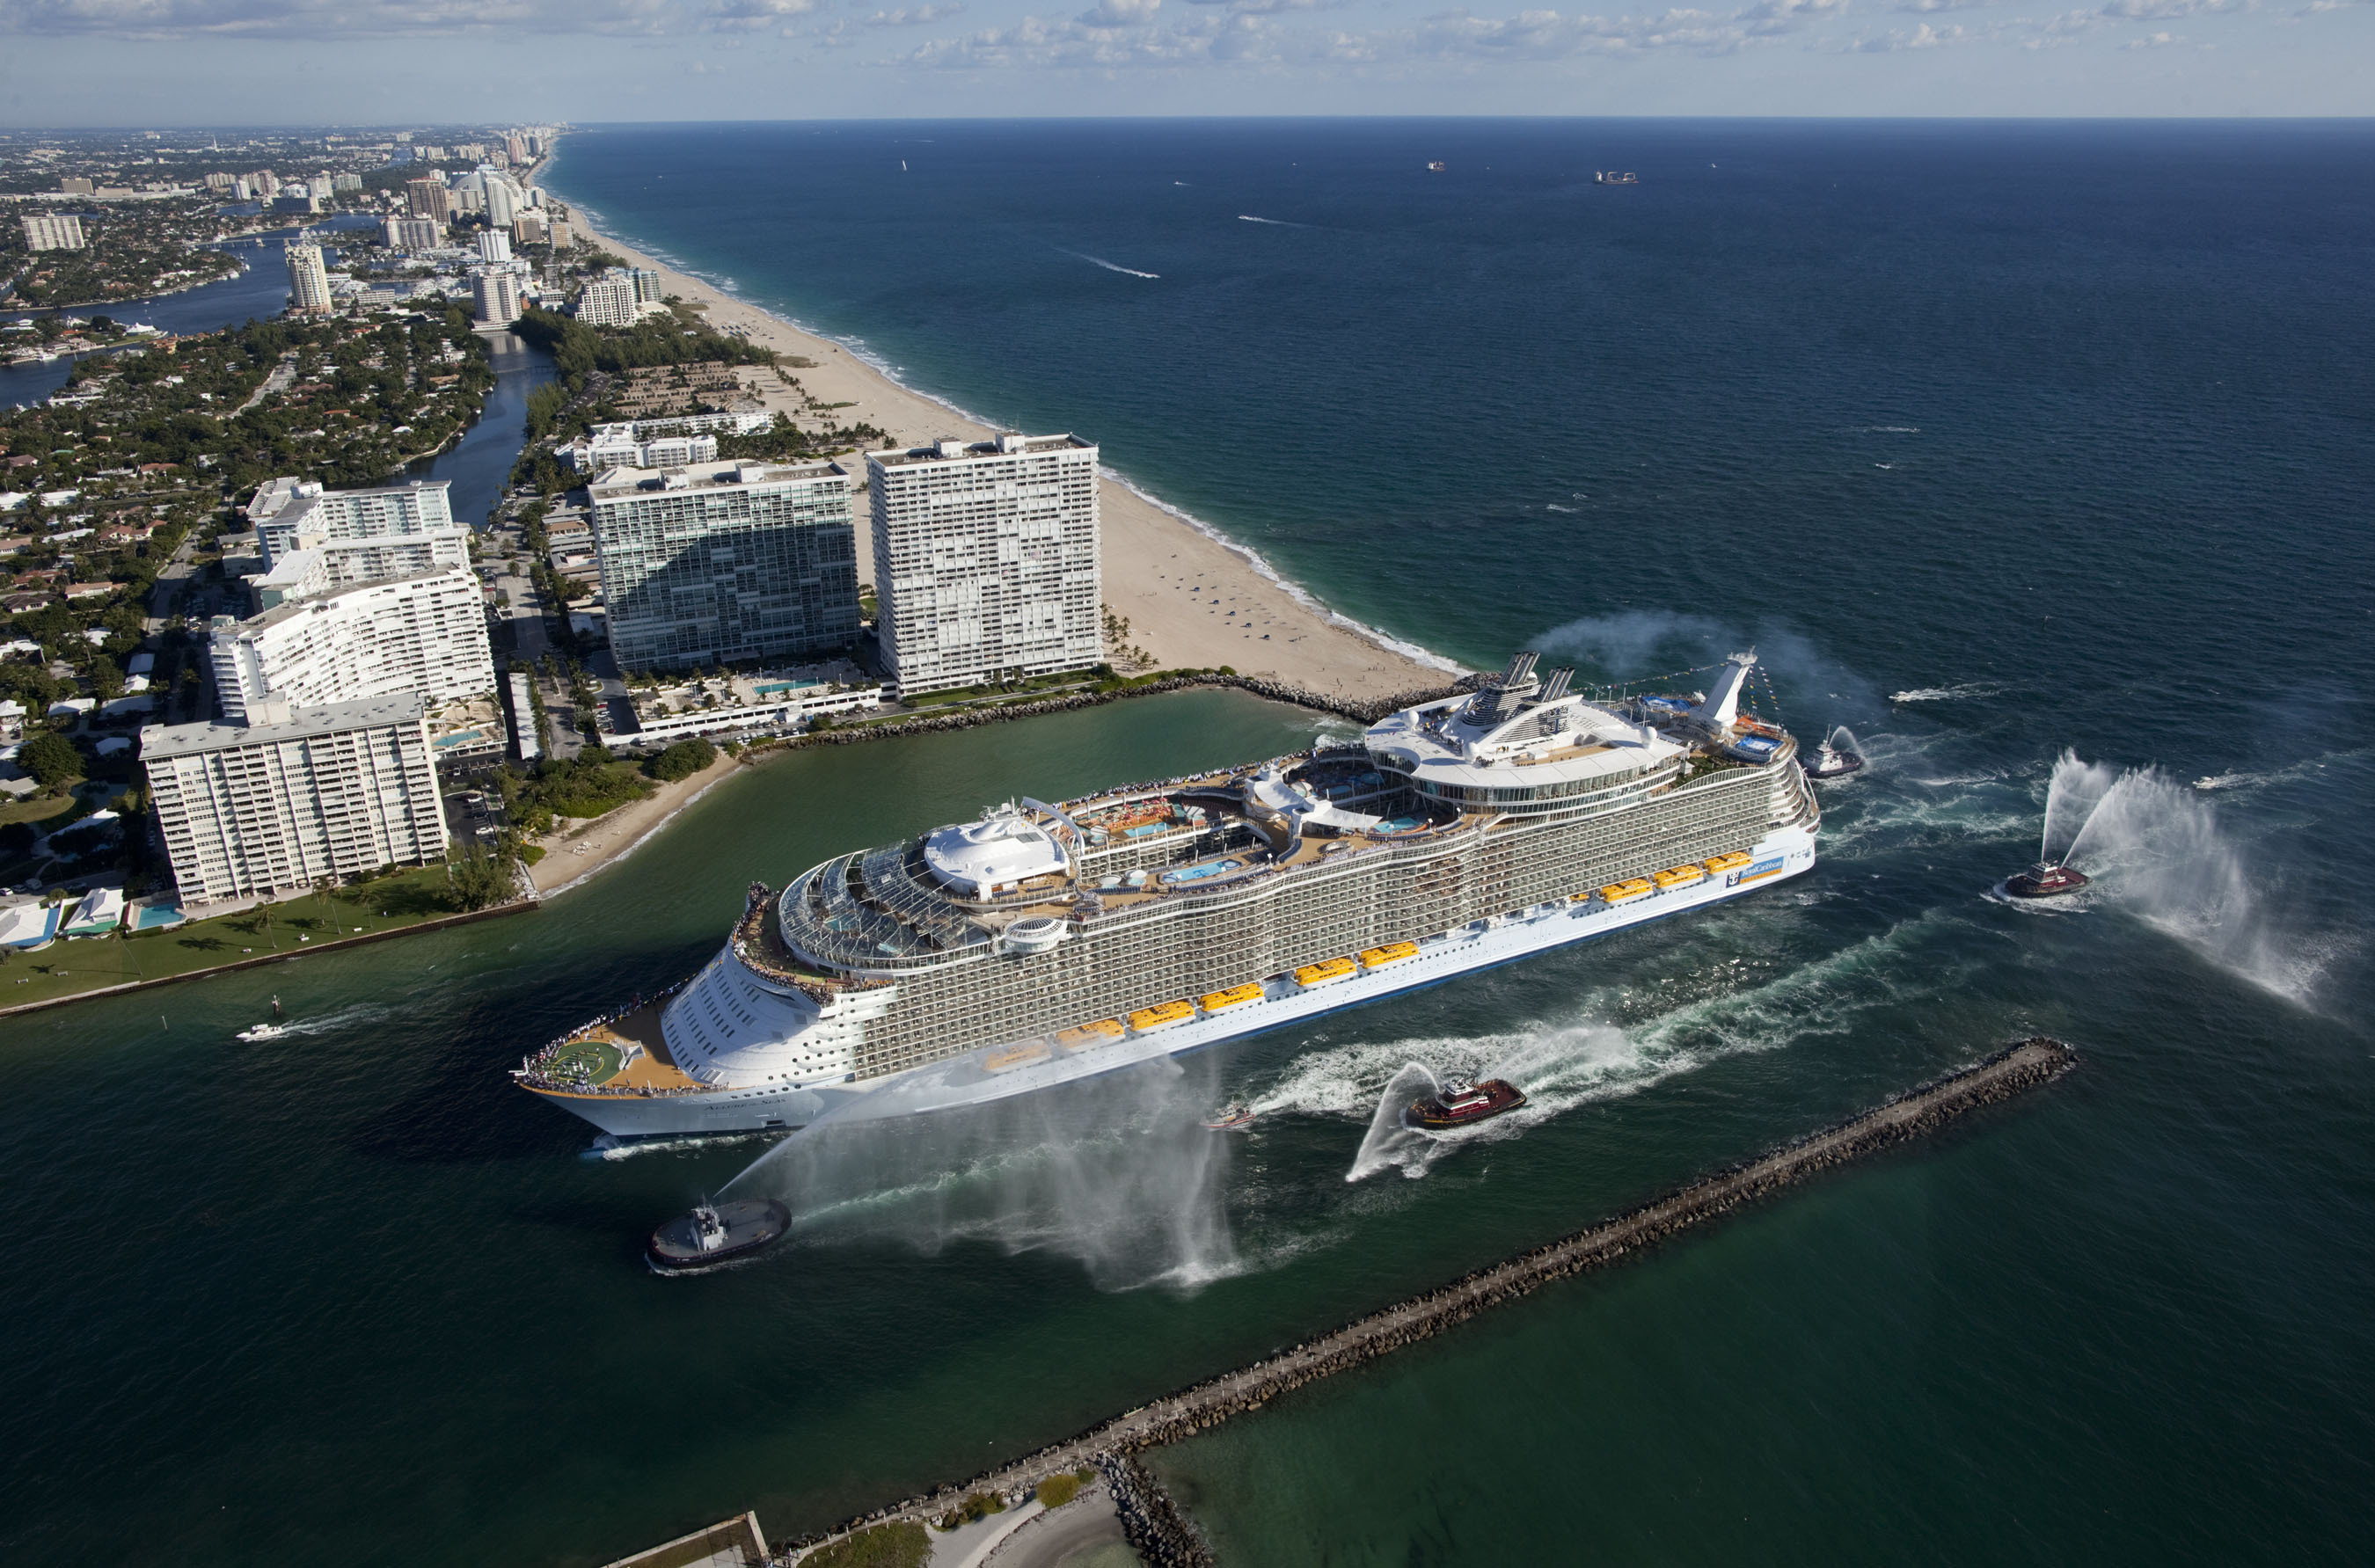 ROYAL CARIBBEAN CRUISES LTD. ALLURE OF THE SEAS